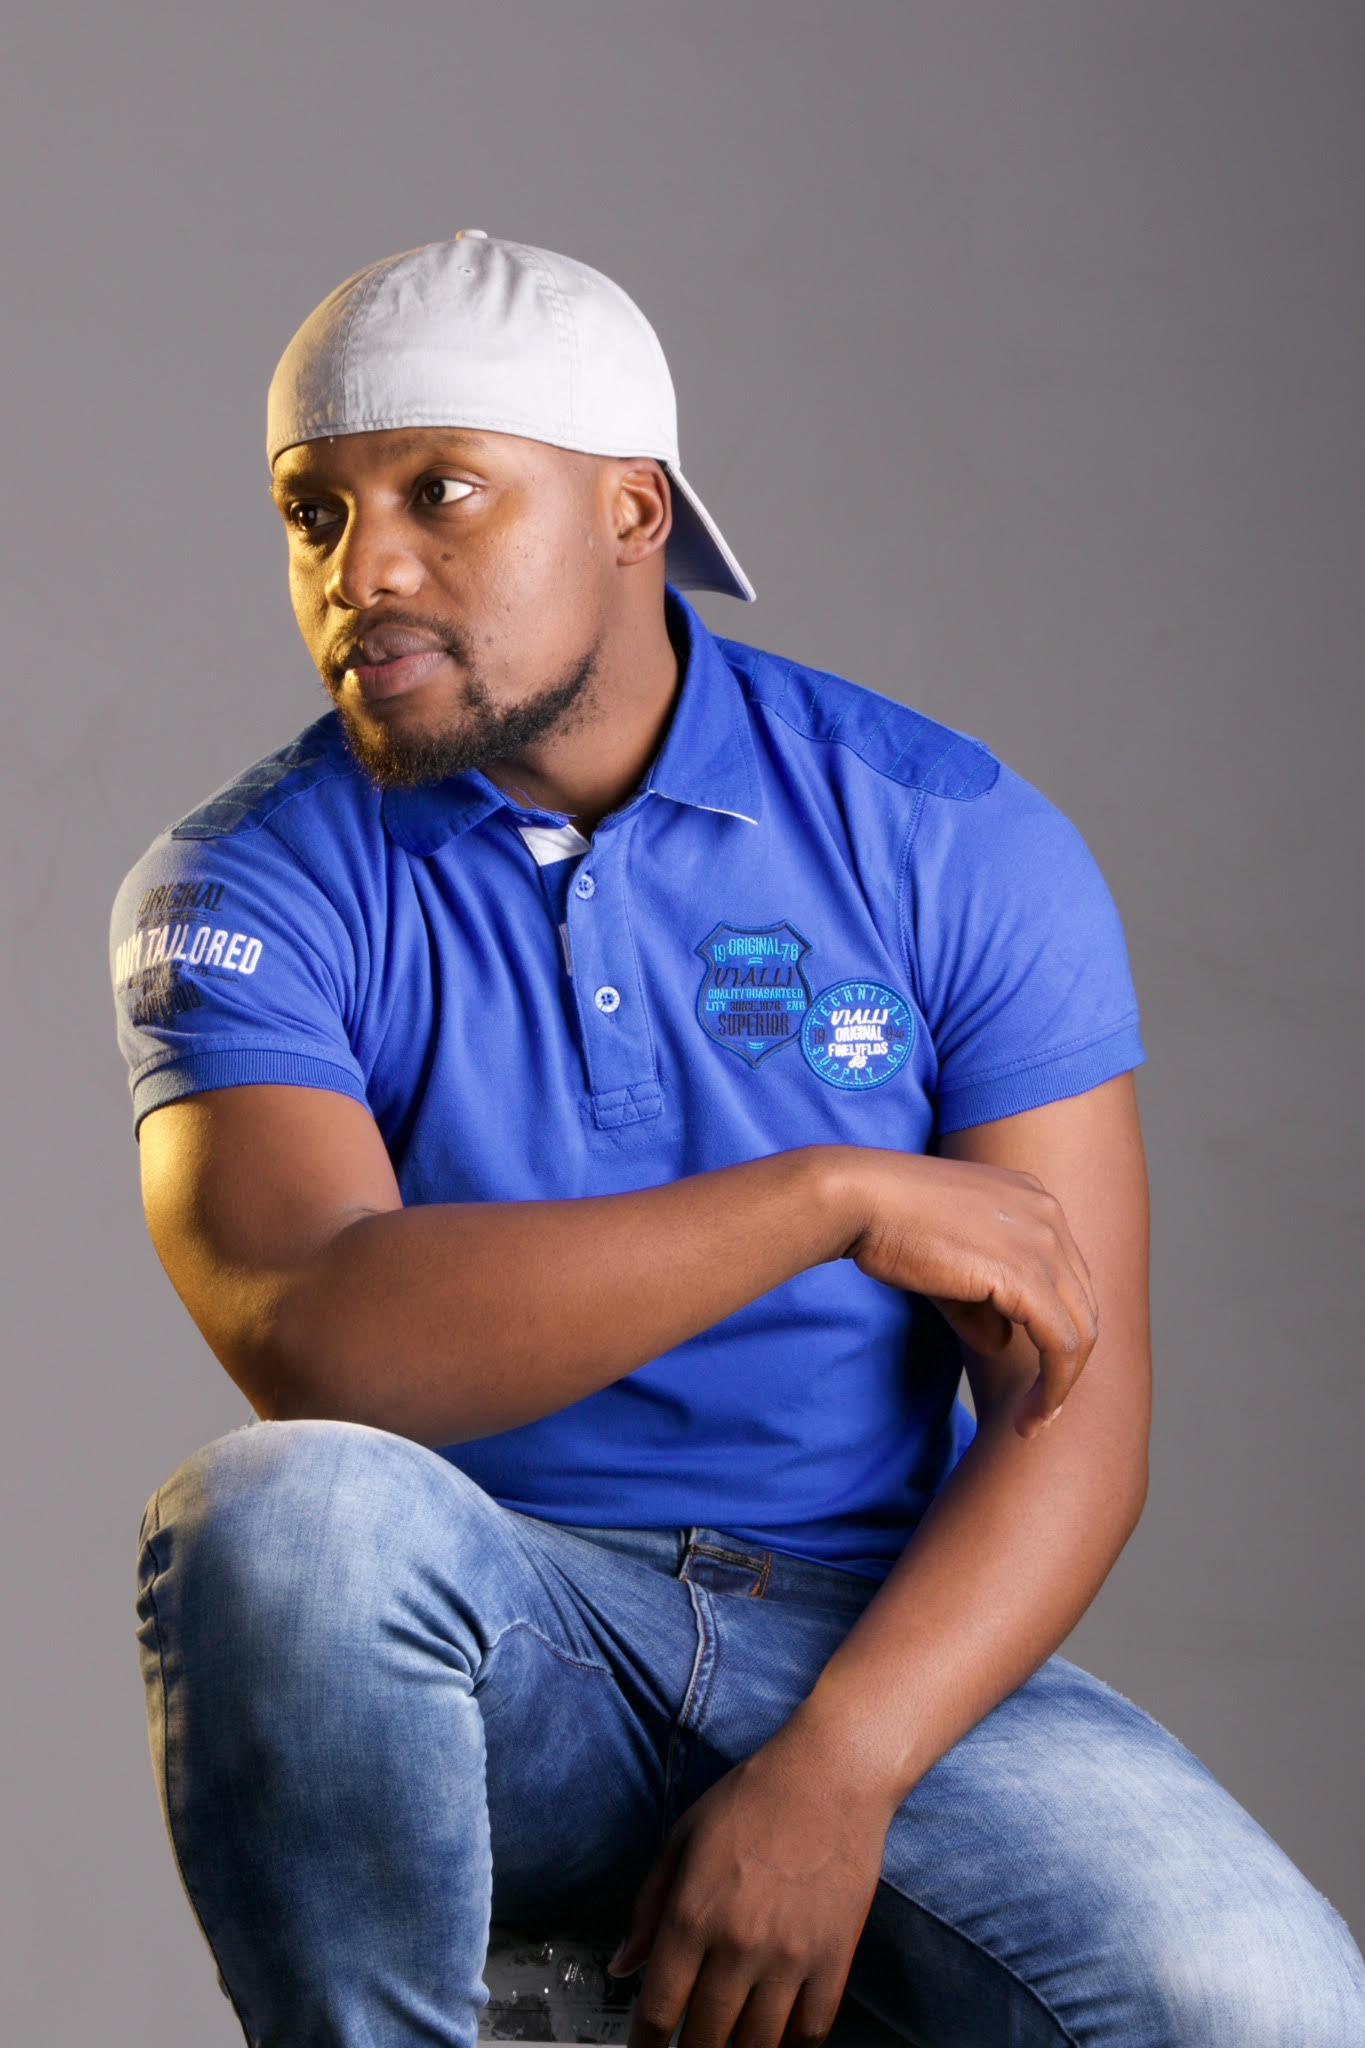 """""""  Study and never fully rely on music, success isn't guaranteed  ."""" - Chymamusique"""